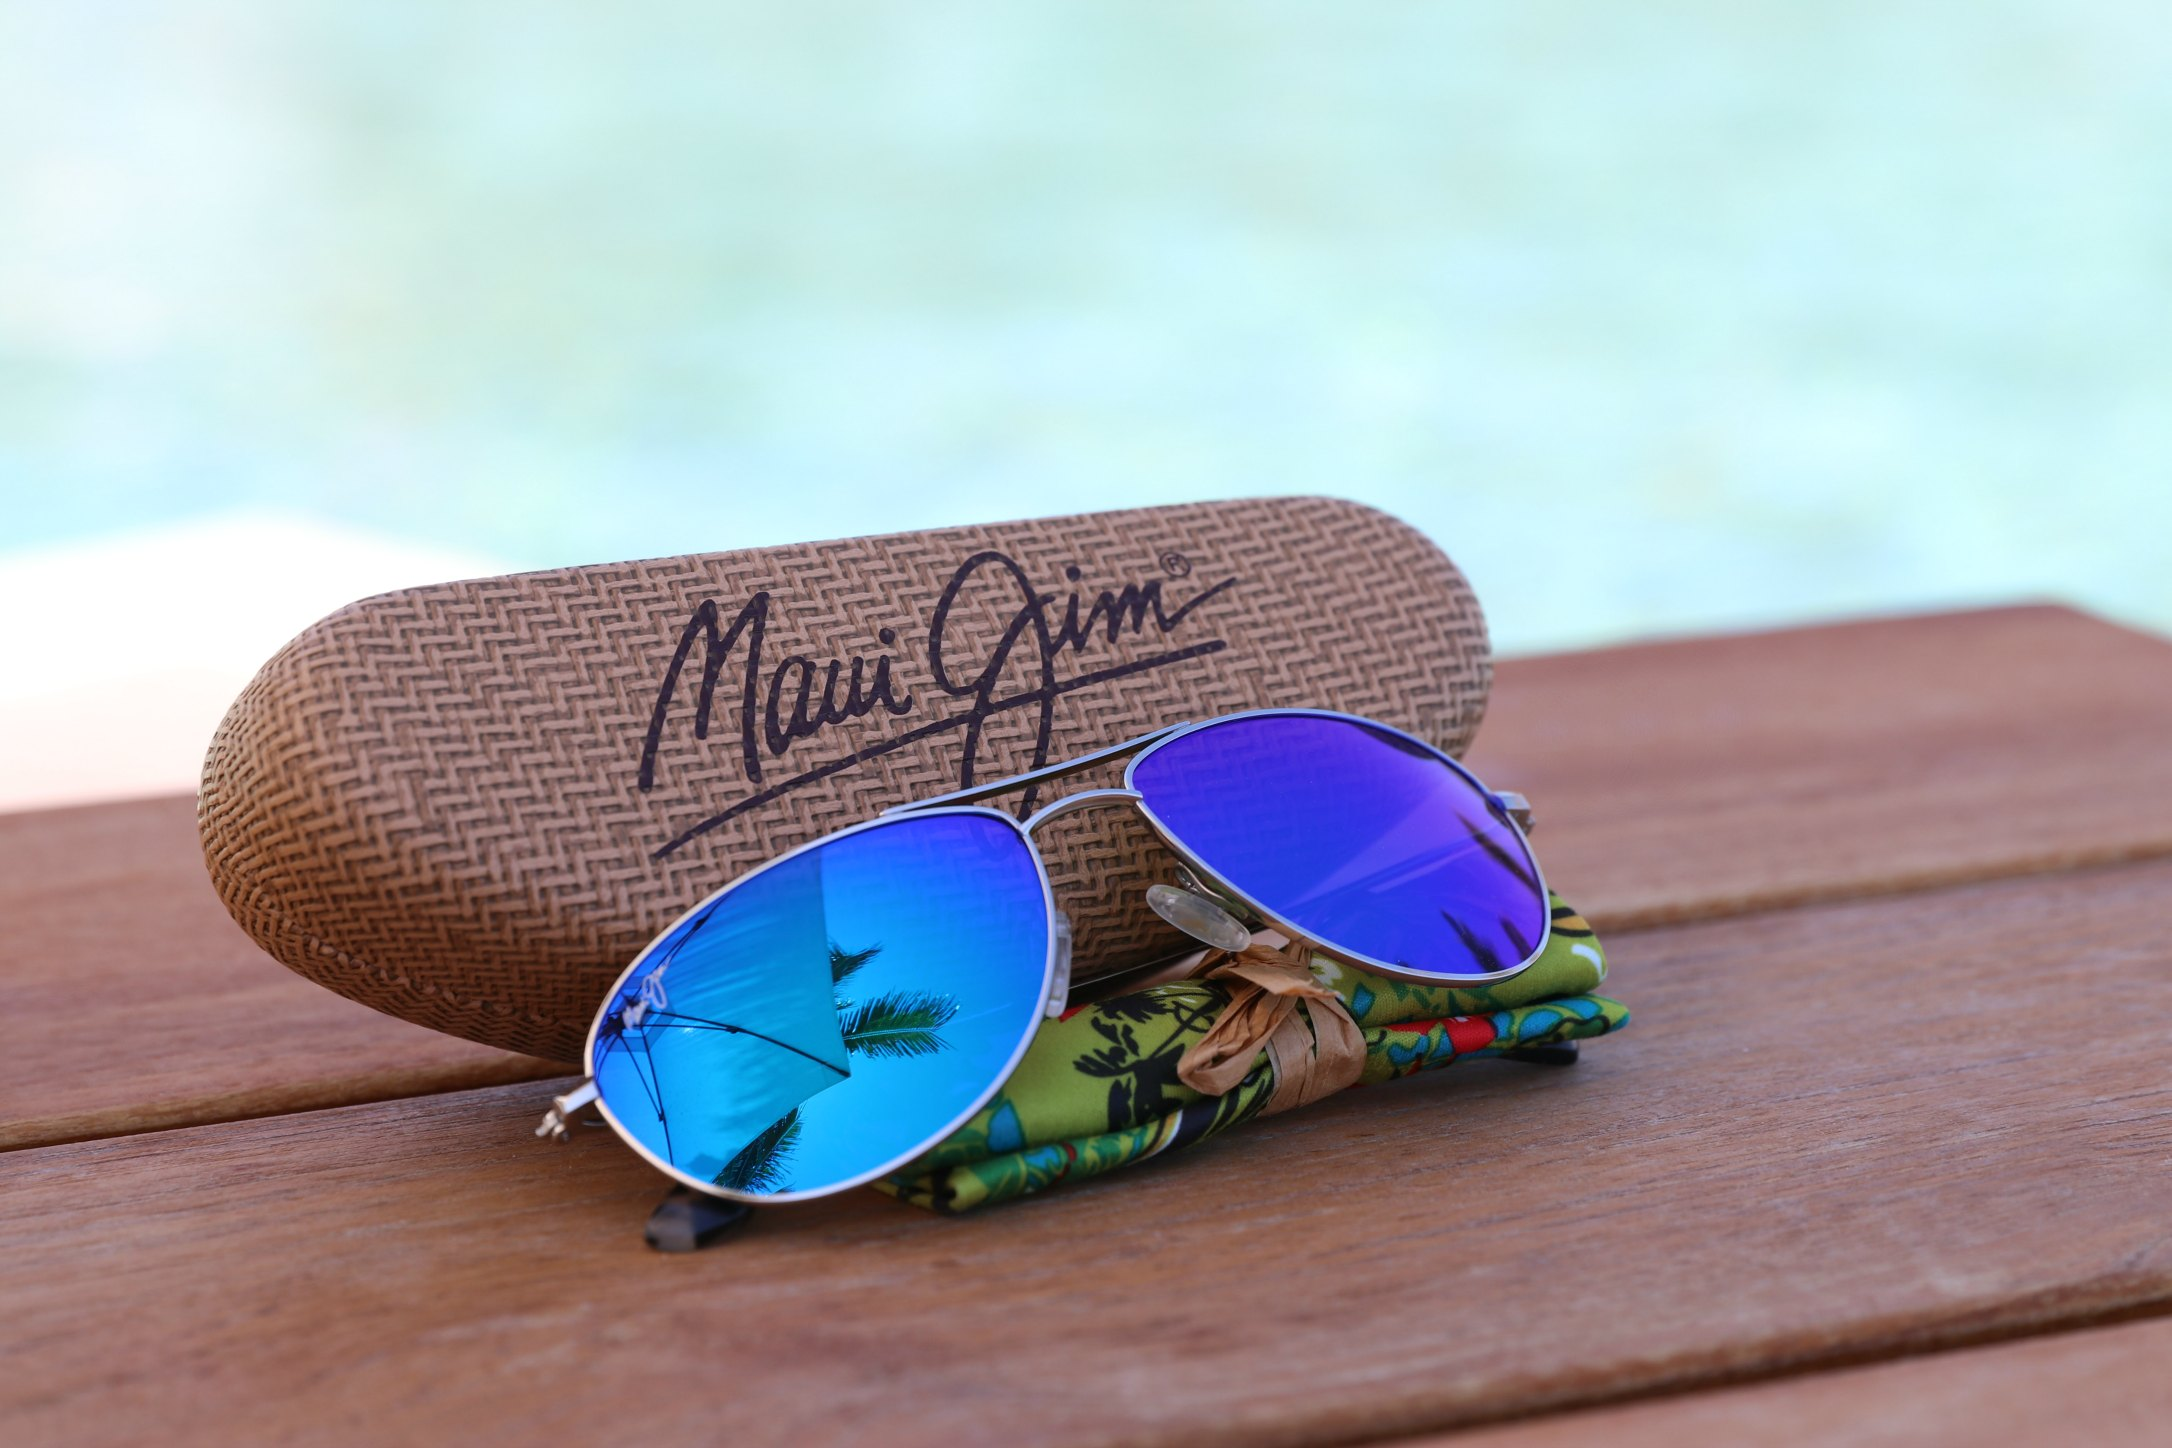 new maui jim sunglasses